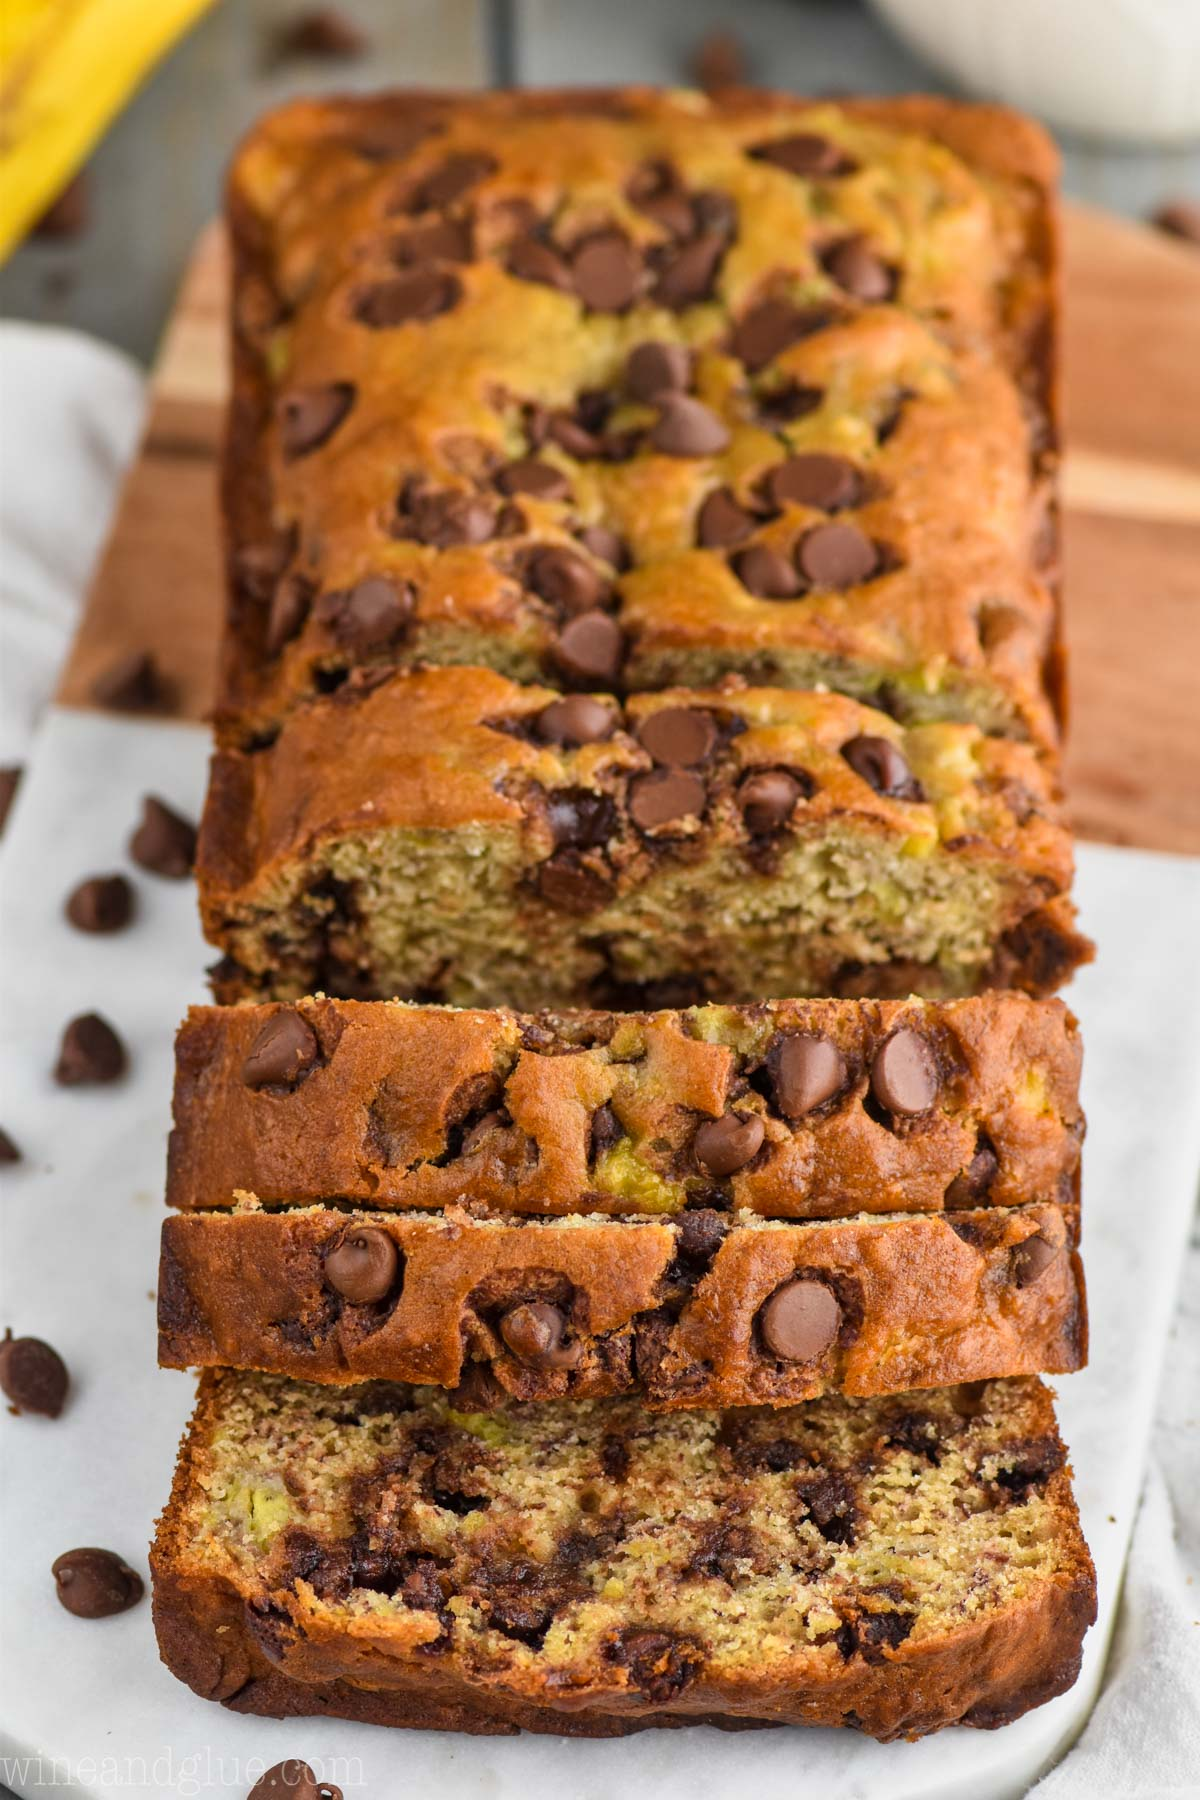 The Best Chocolate Chip Banana Bread Recipe